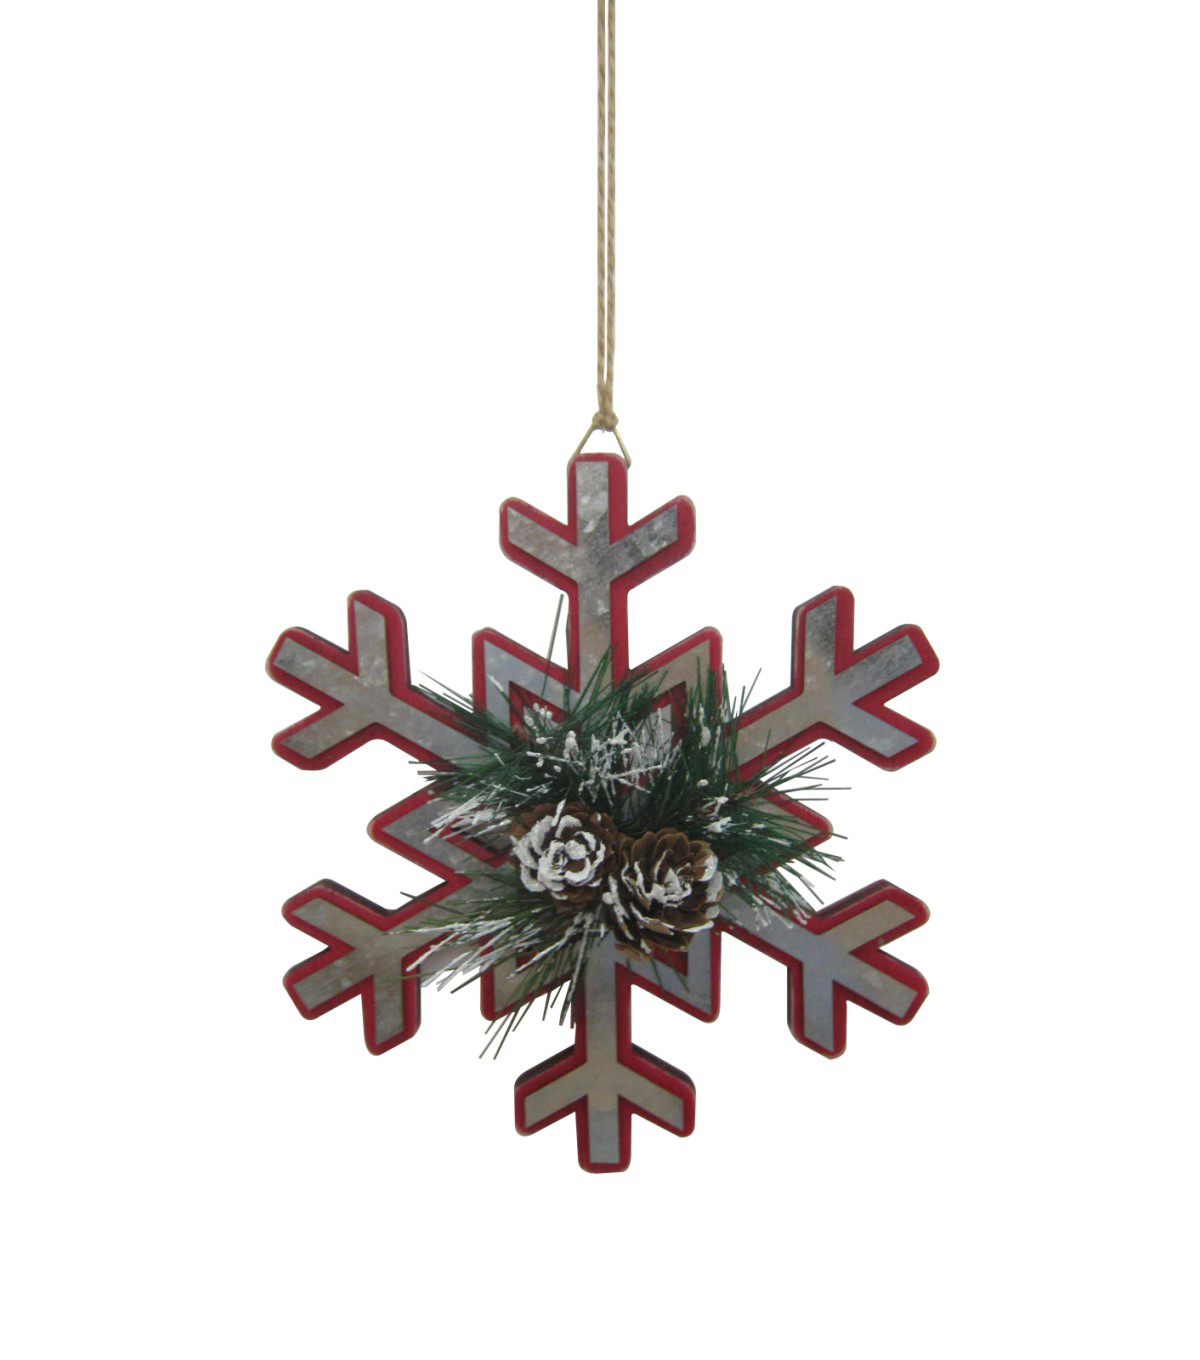 Maker\u0027s Holiday Christmas Handmade Holiday Metal Snowflake Ornament-Red